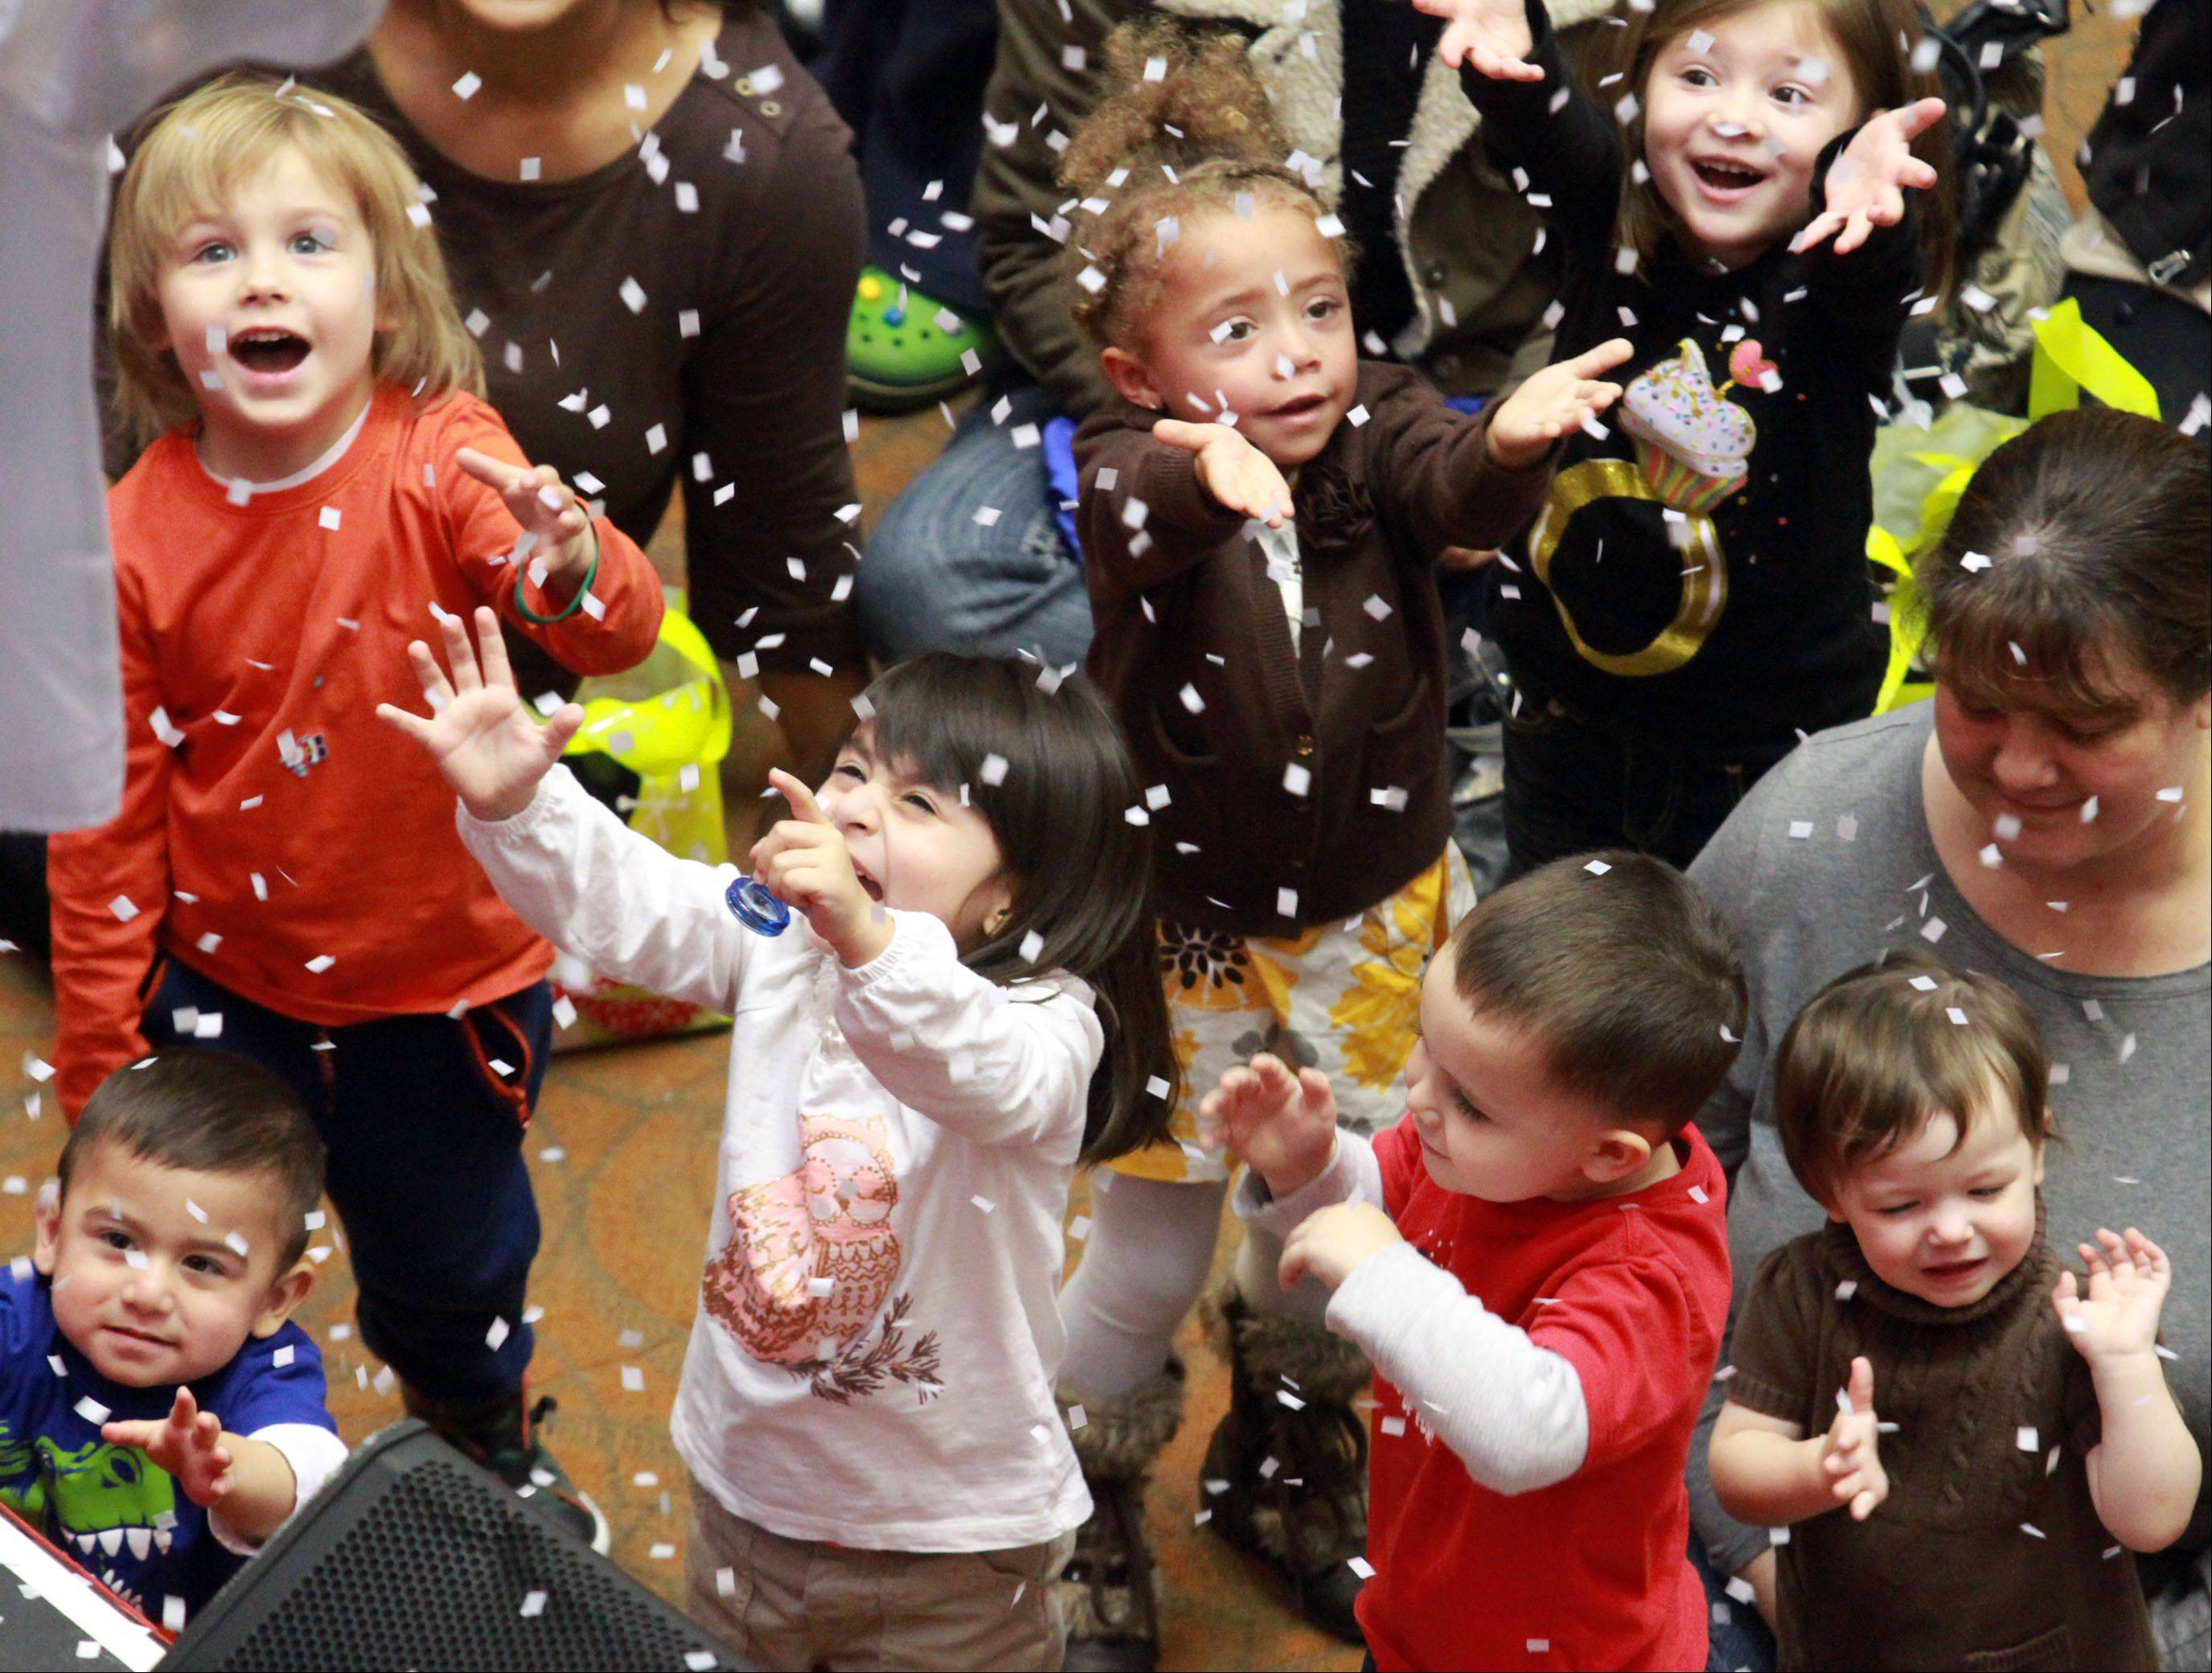 Children try to catch simulated snow during a magic show that announced the start of the Santa Claus parade at Woodfield Mall in Schaumburg on Thursday.